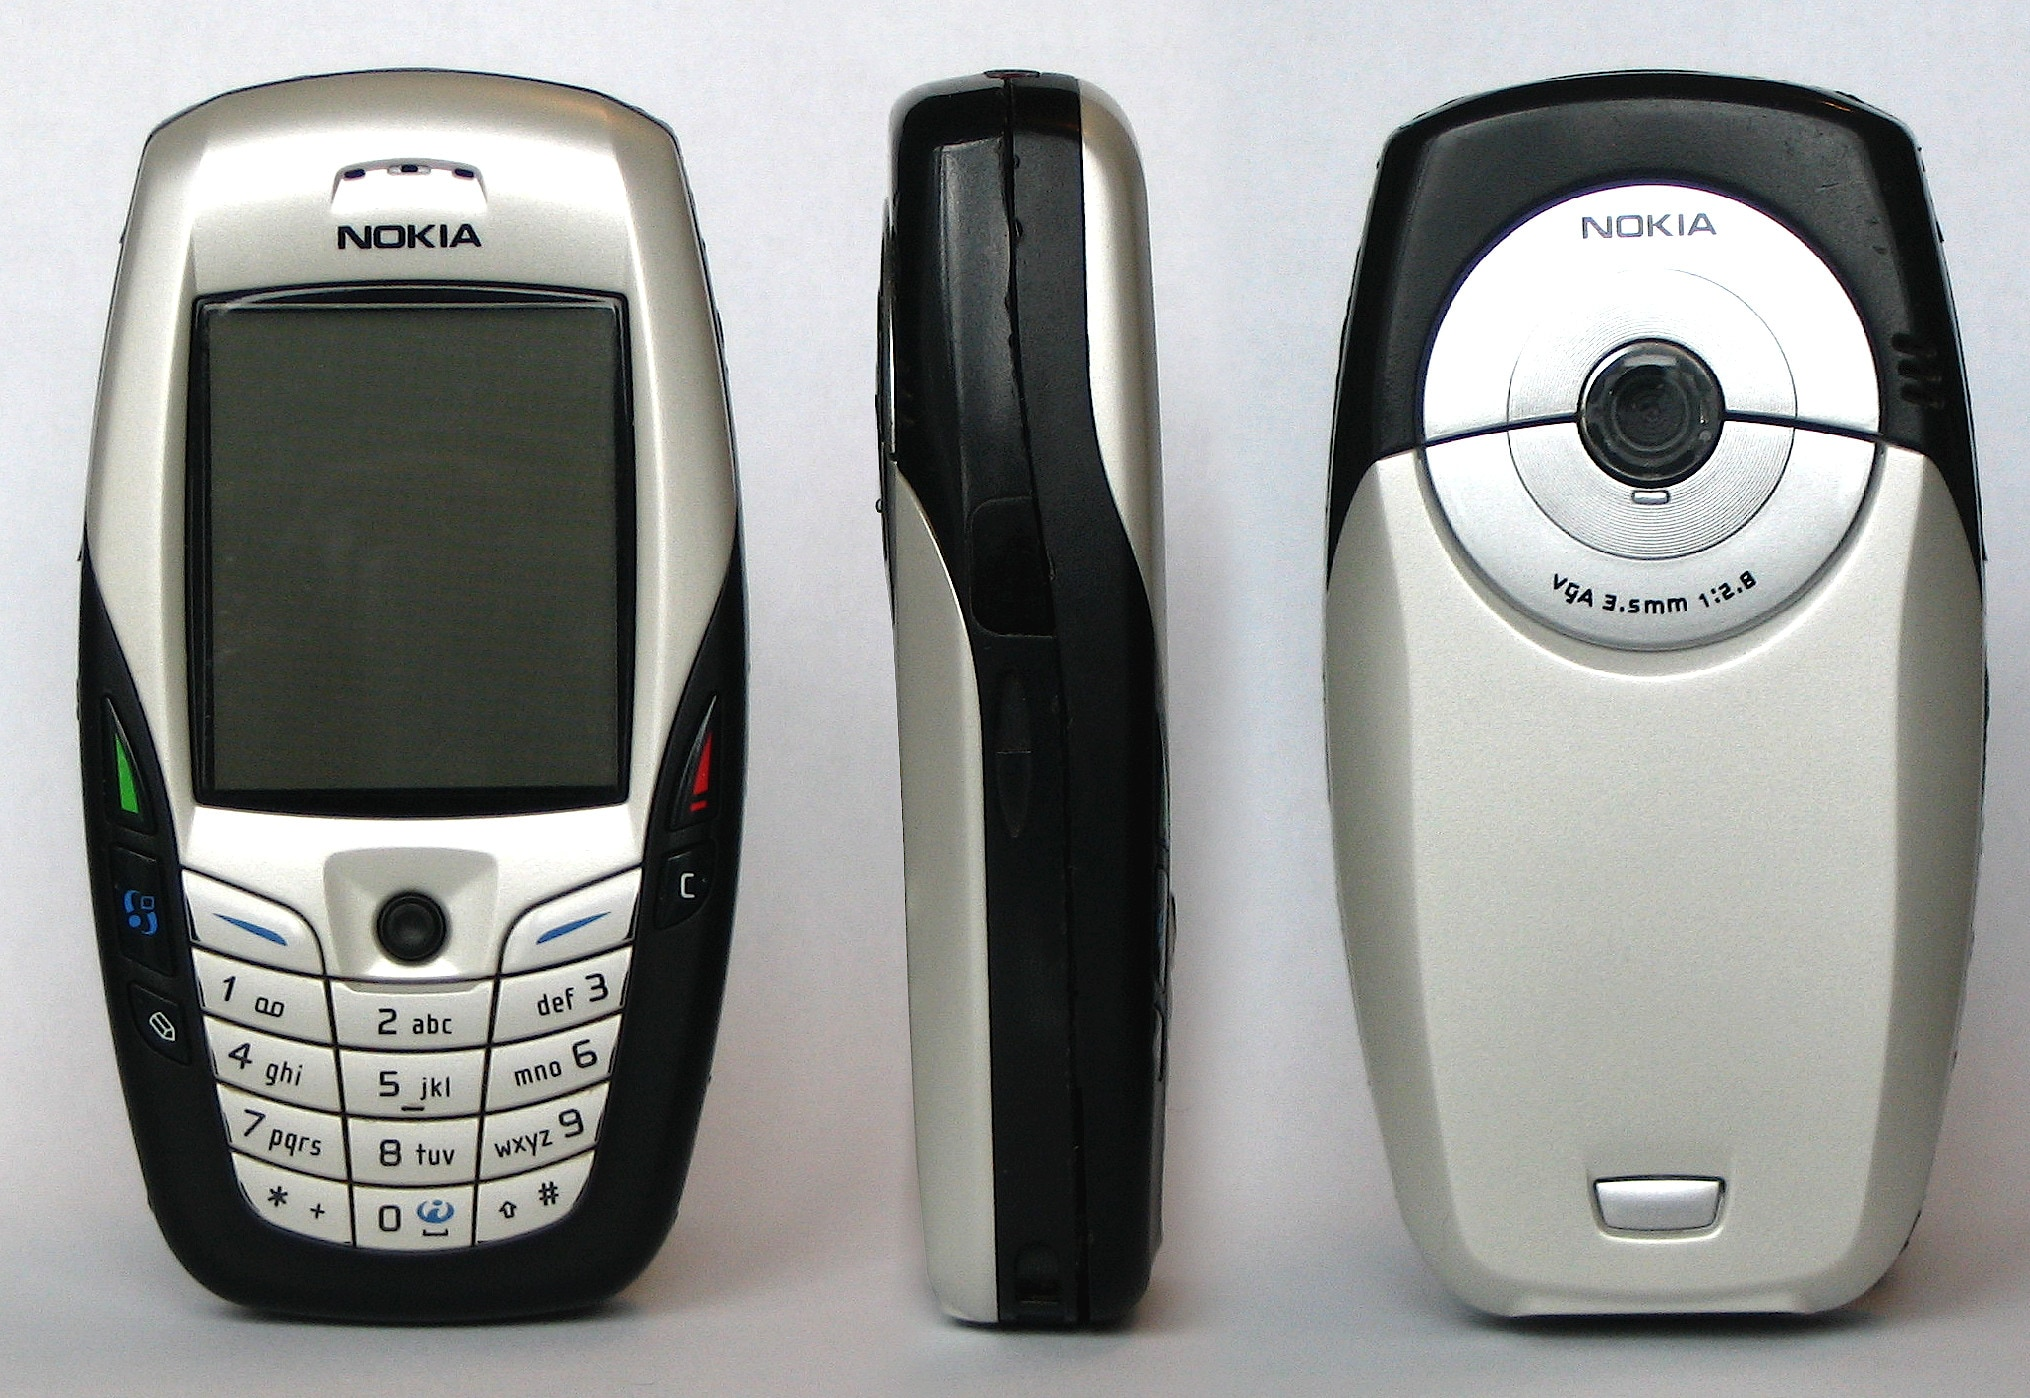 Nokia is known for its icon feature phones such as the Nokia 1100, Nokia 1200, Nokia 3100 and Nokia 6600 among others.